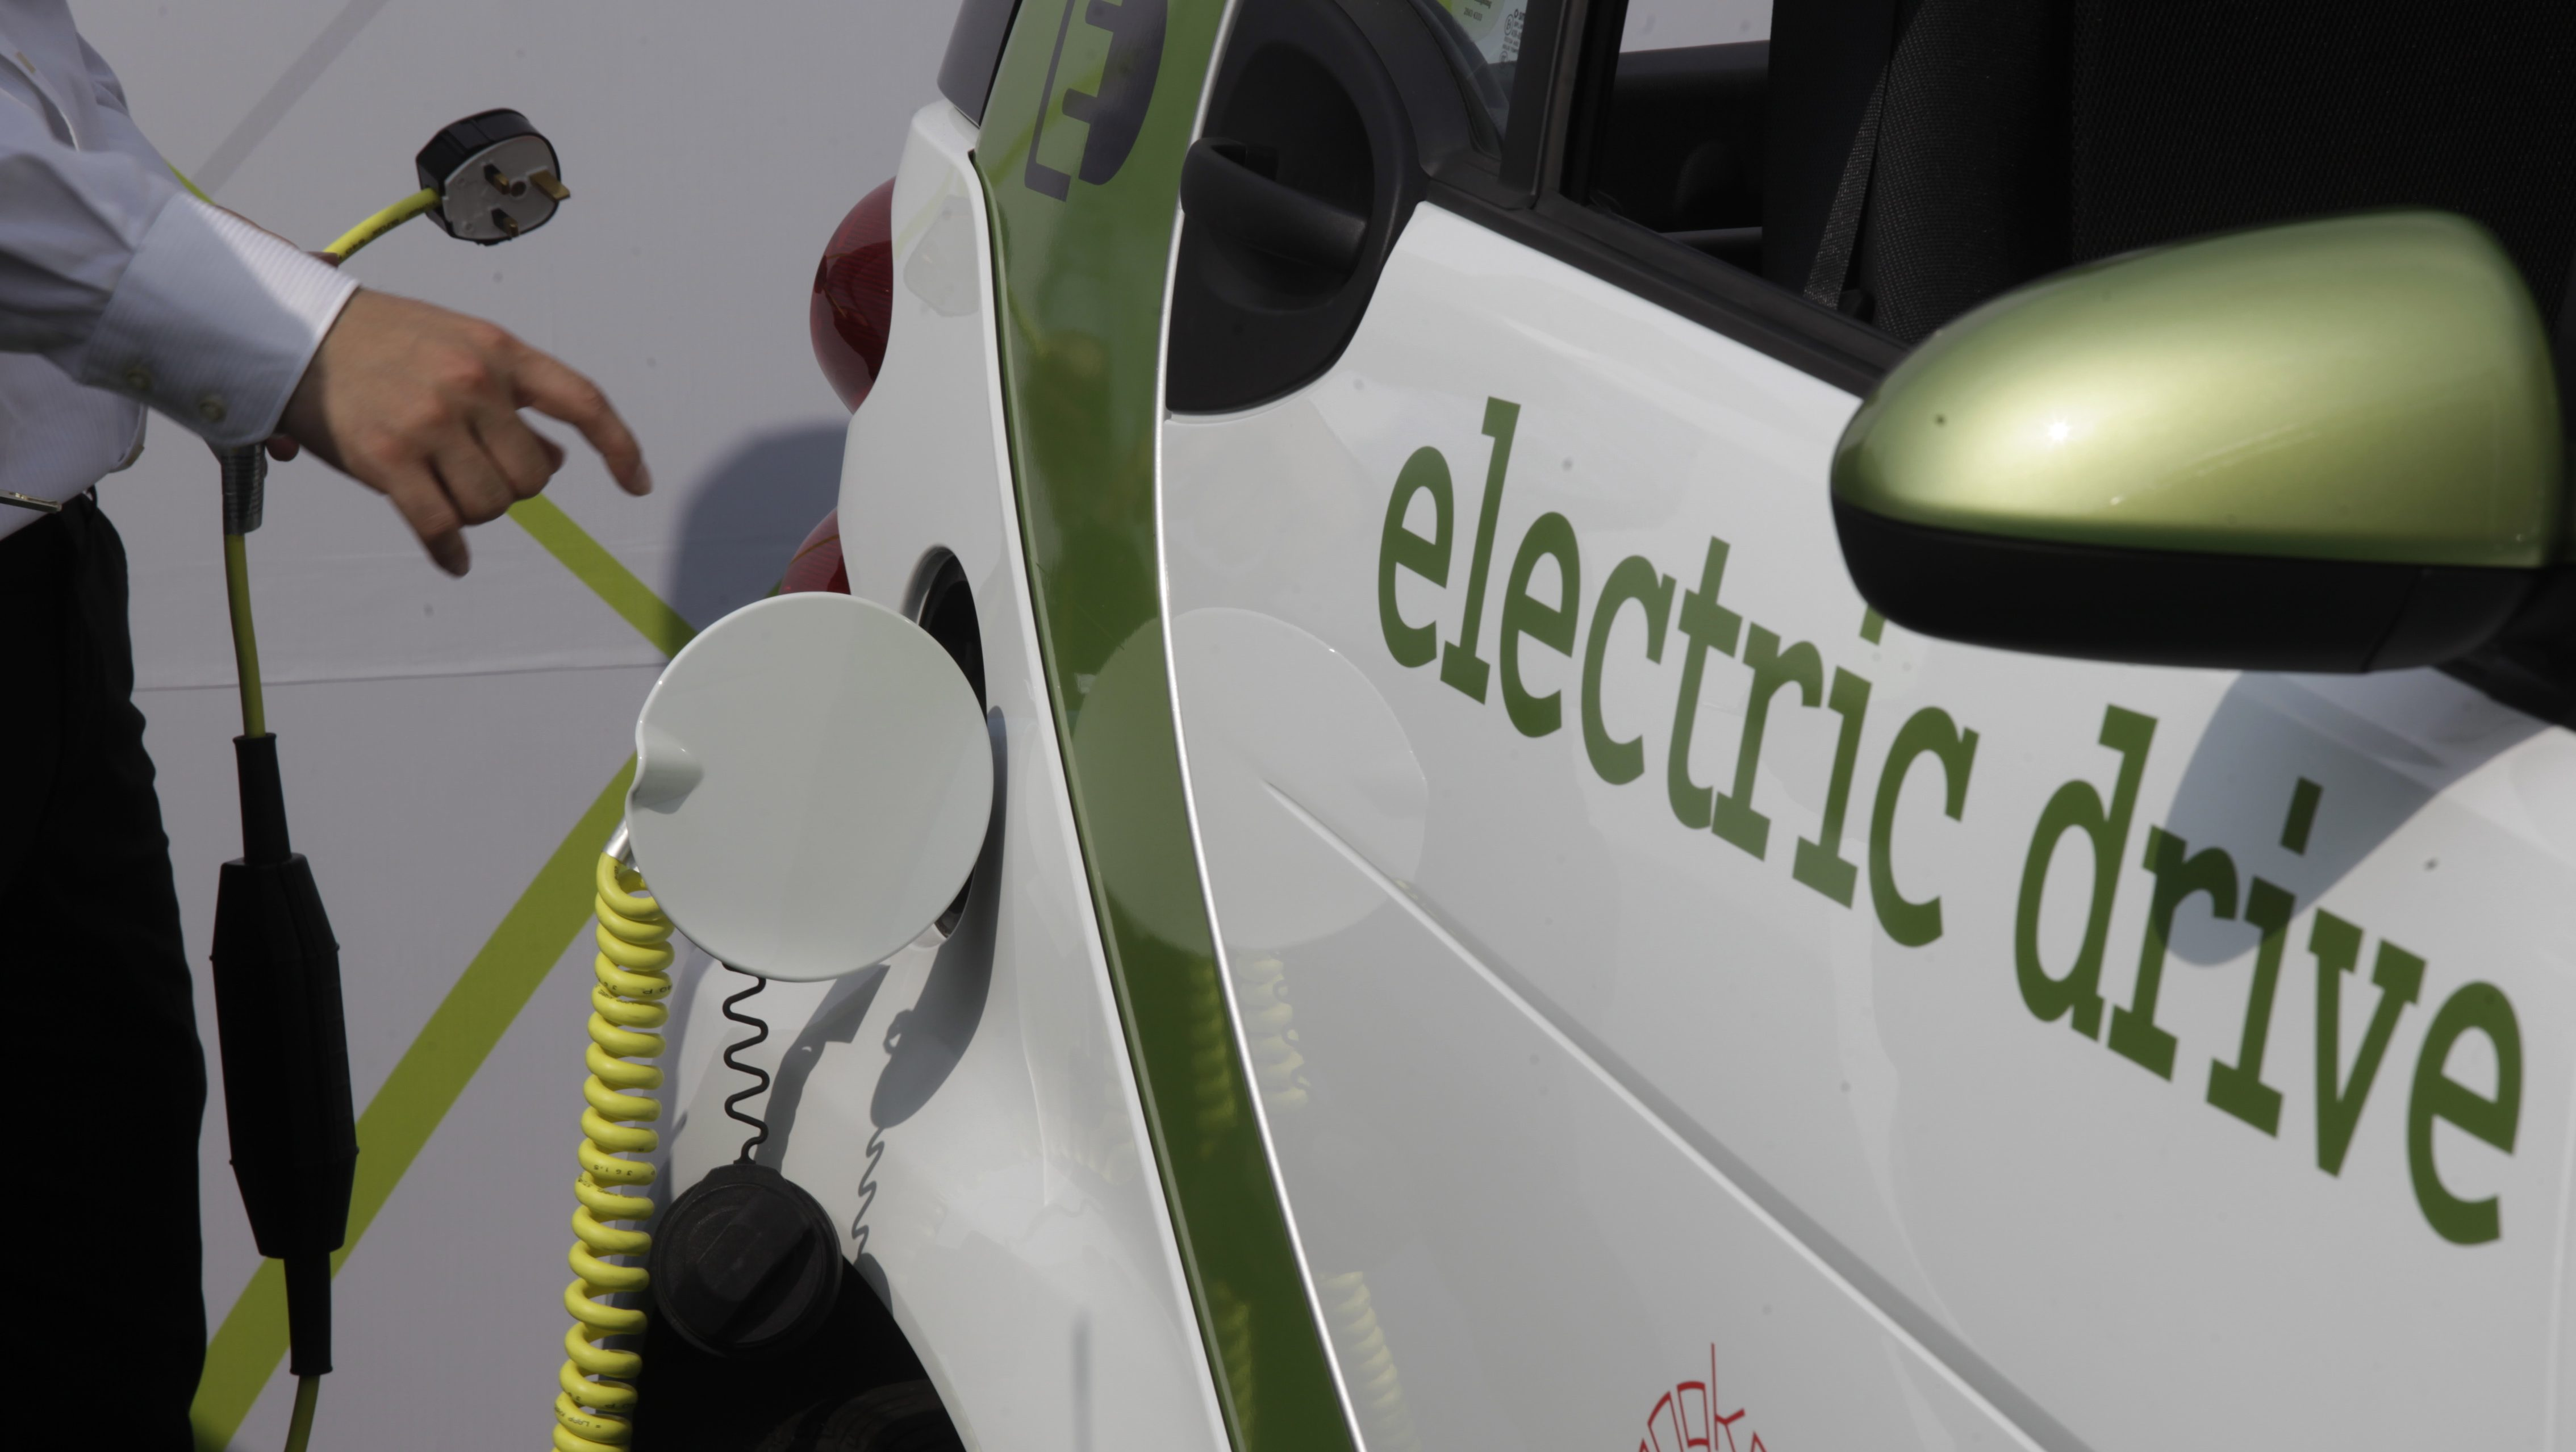 A man holds an electric socket beside a Mercedes-Benz Smart Fortwo electric vehicle during its official launch ceremony in Hong Kong, China, 06 September 2011. Smart Fortwo electric vehicle is the first European electric vehicle for daily use in Hong Kong. The two-seater, which is powered by a 30 kw electric motor fitted at the rear, runs a top speed of 100mph.